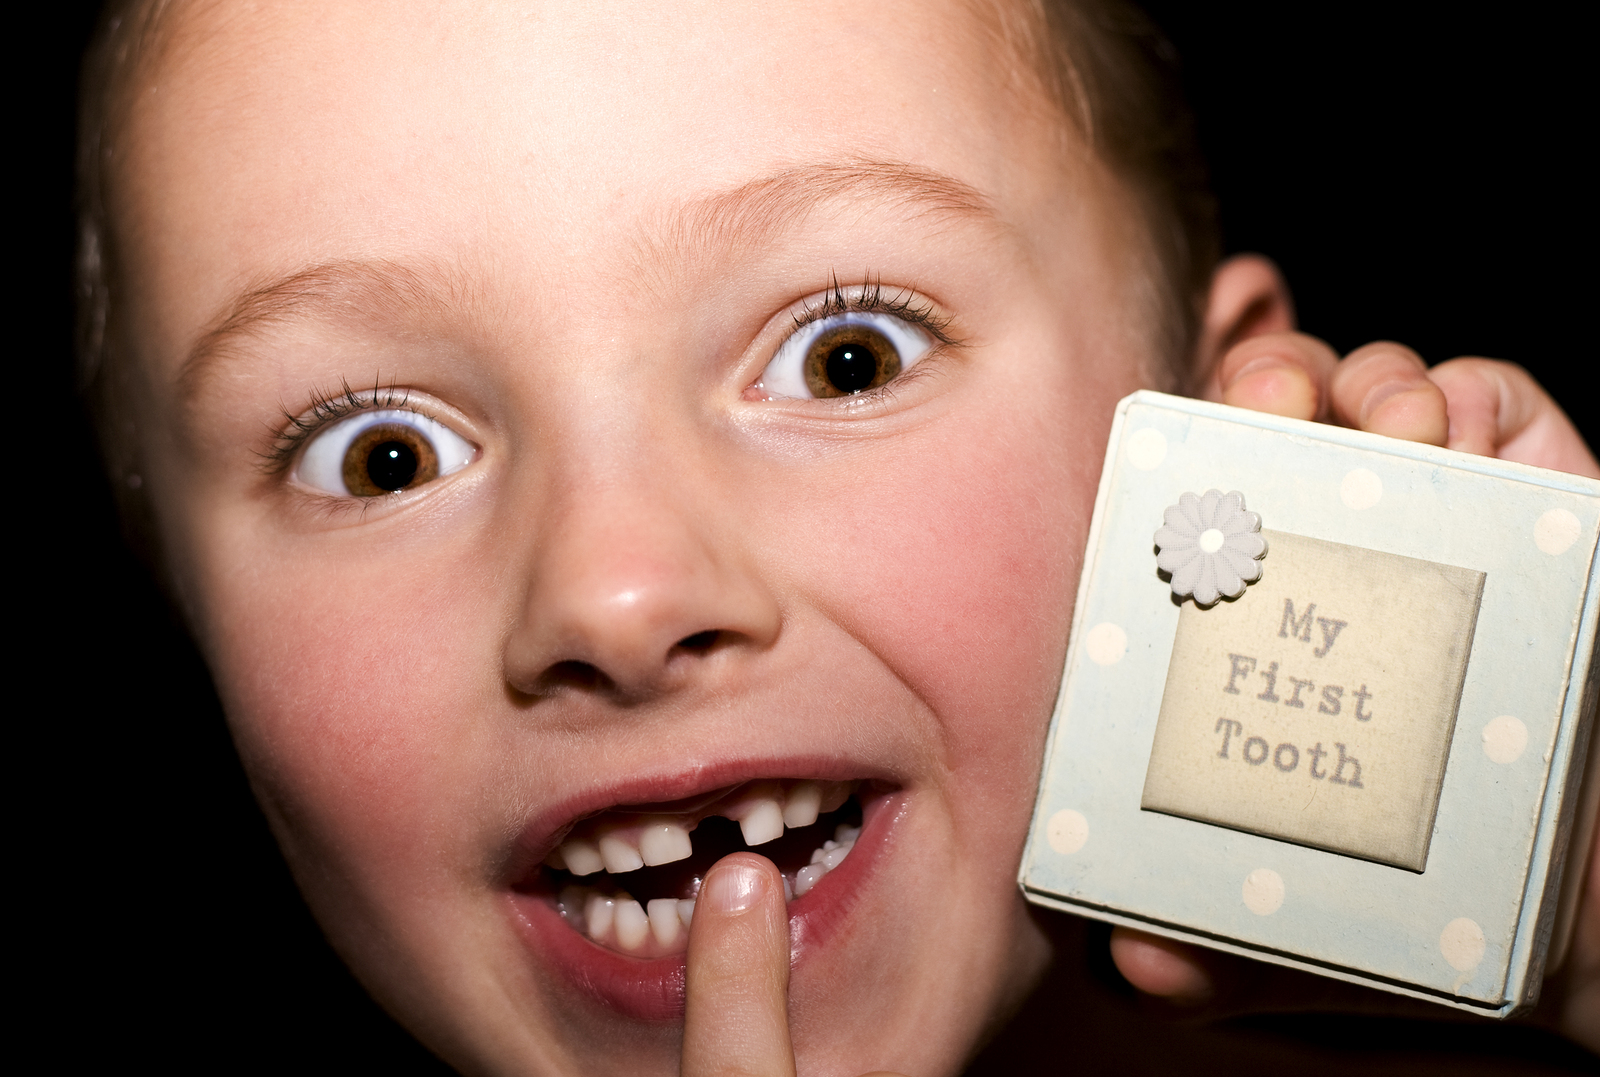 It's National Tooth Fairy Day, so we pay homage to fairies all over the world!